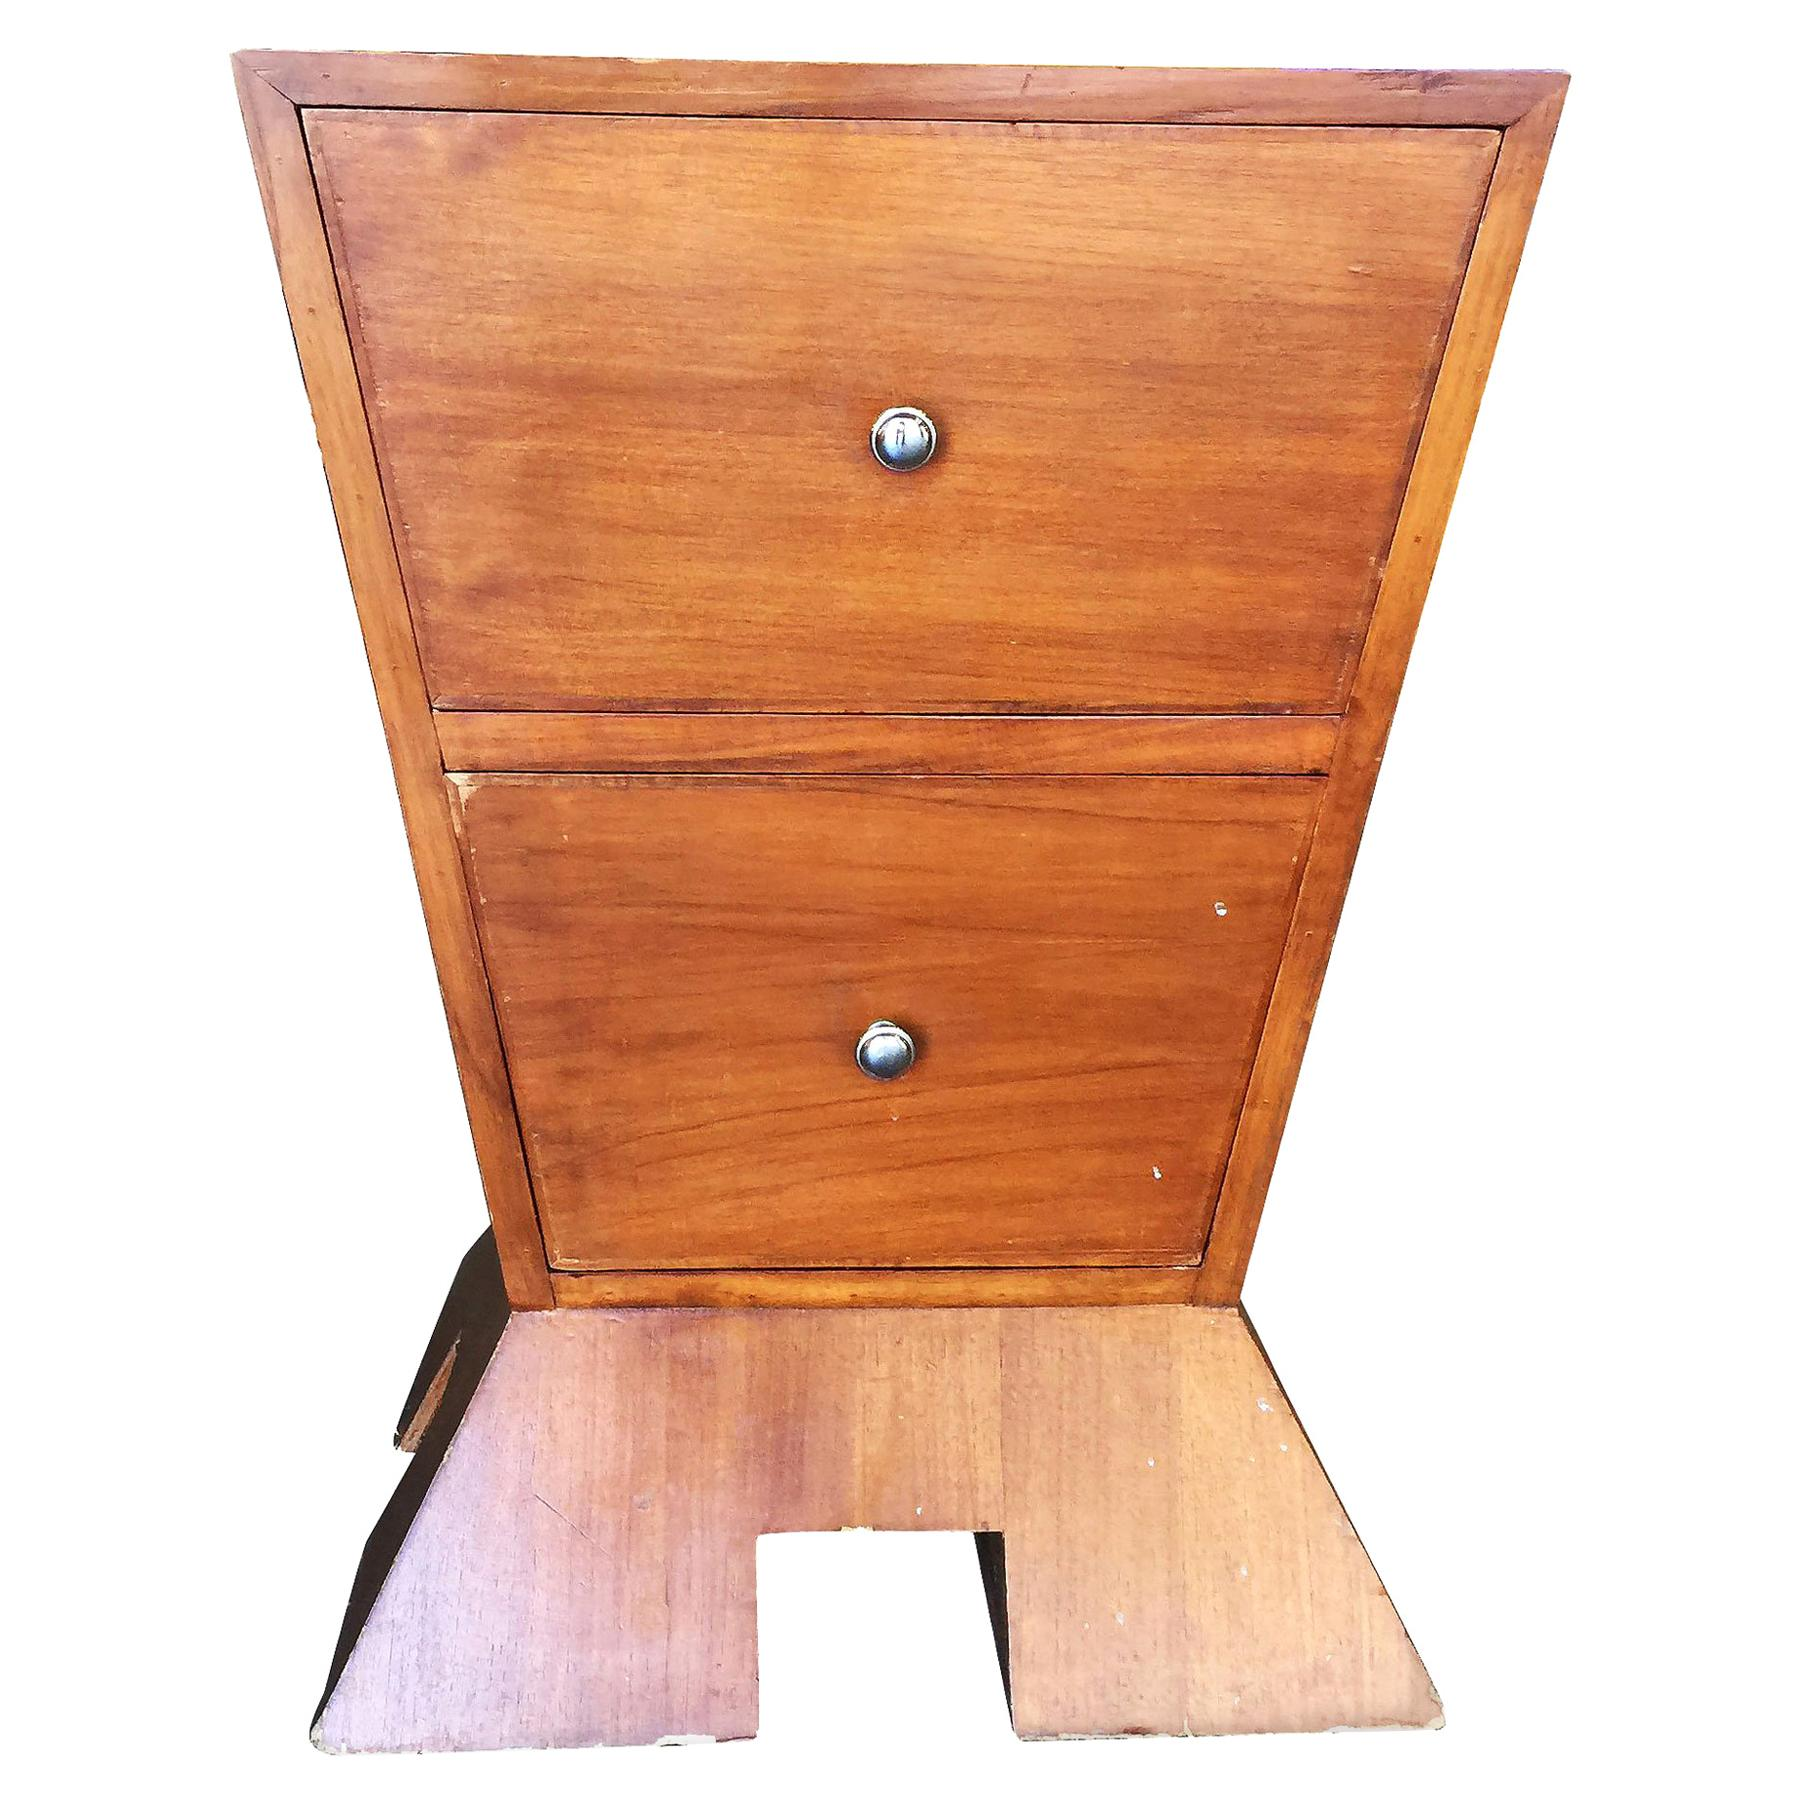 Modernist Midcentury Inverted Triangle Bedside Table